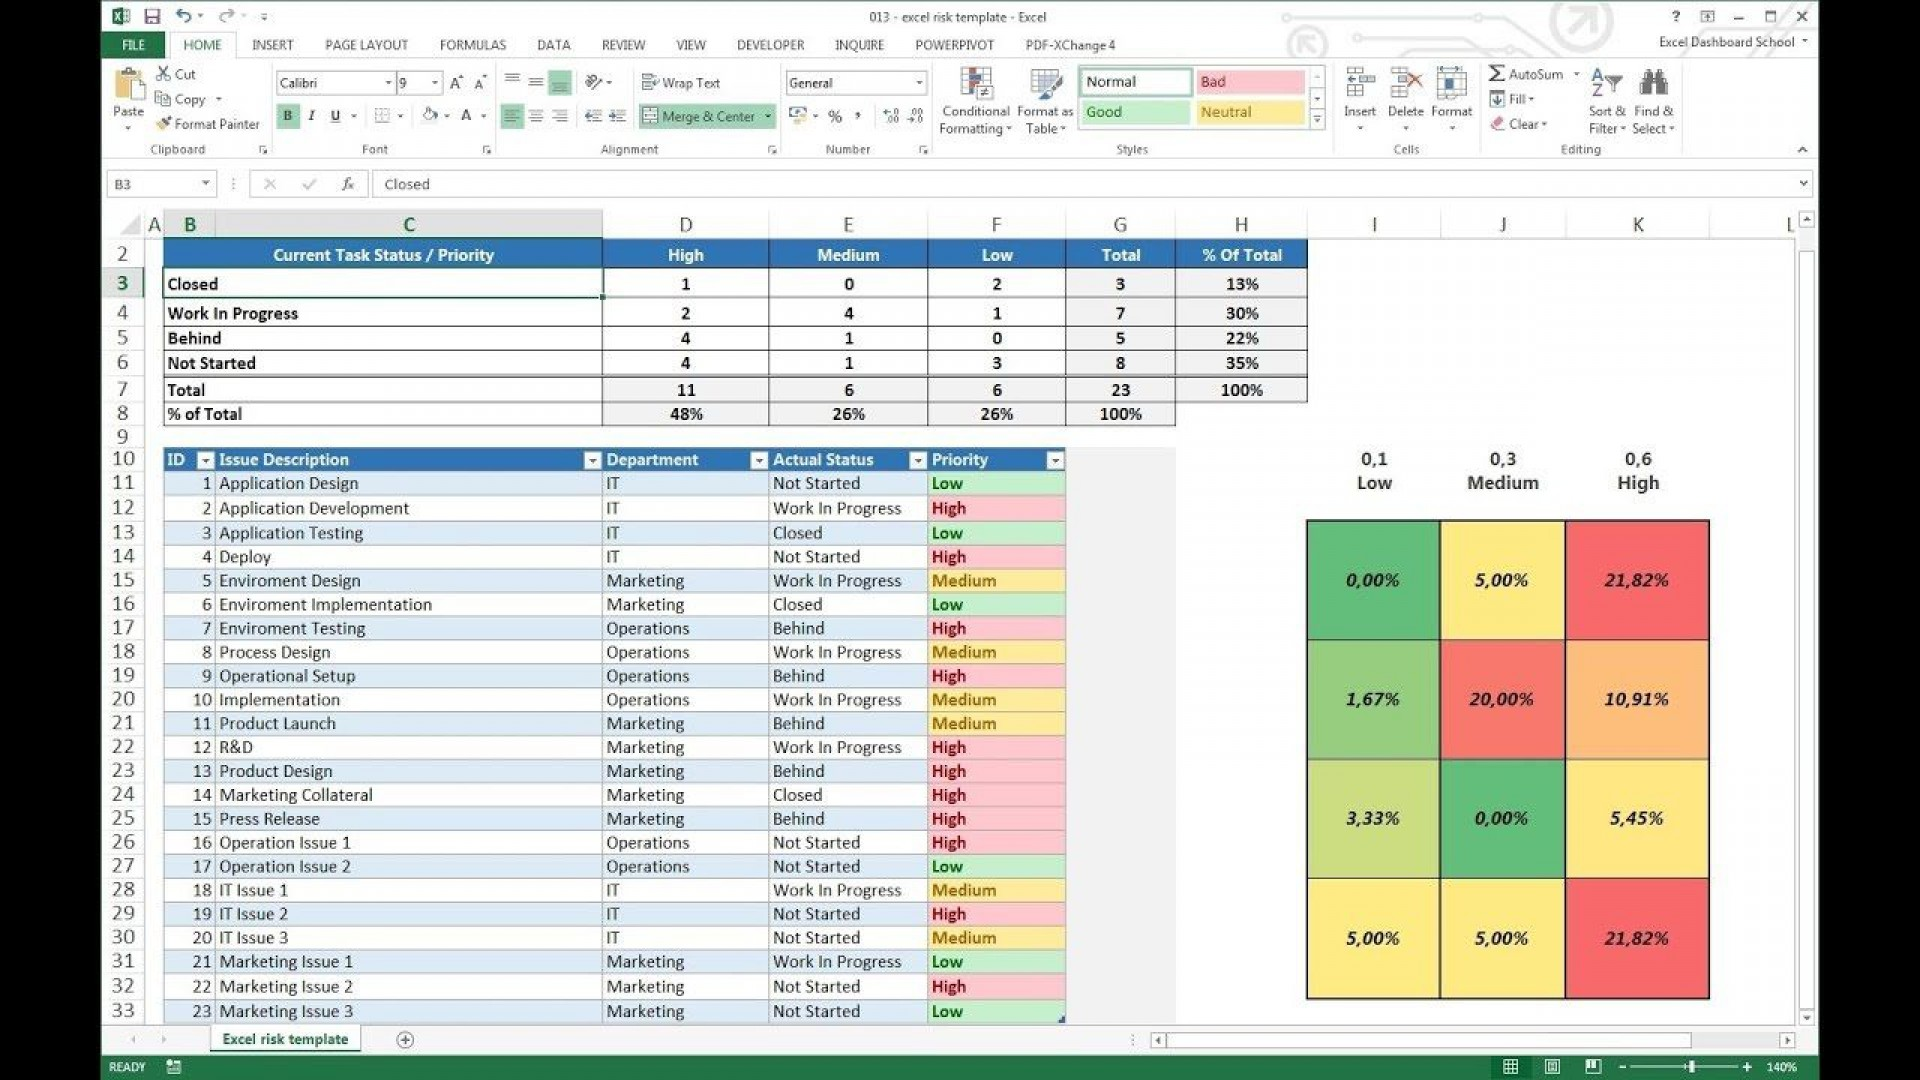 004 Wondrou Excel Project Management Template High Resolution  With Dependencie Gantt Schedule Creation Microsoft Office1920